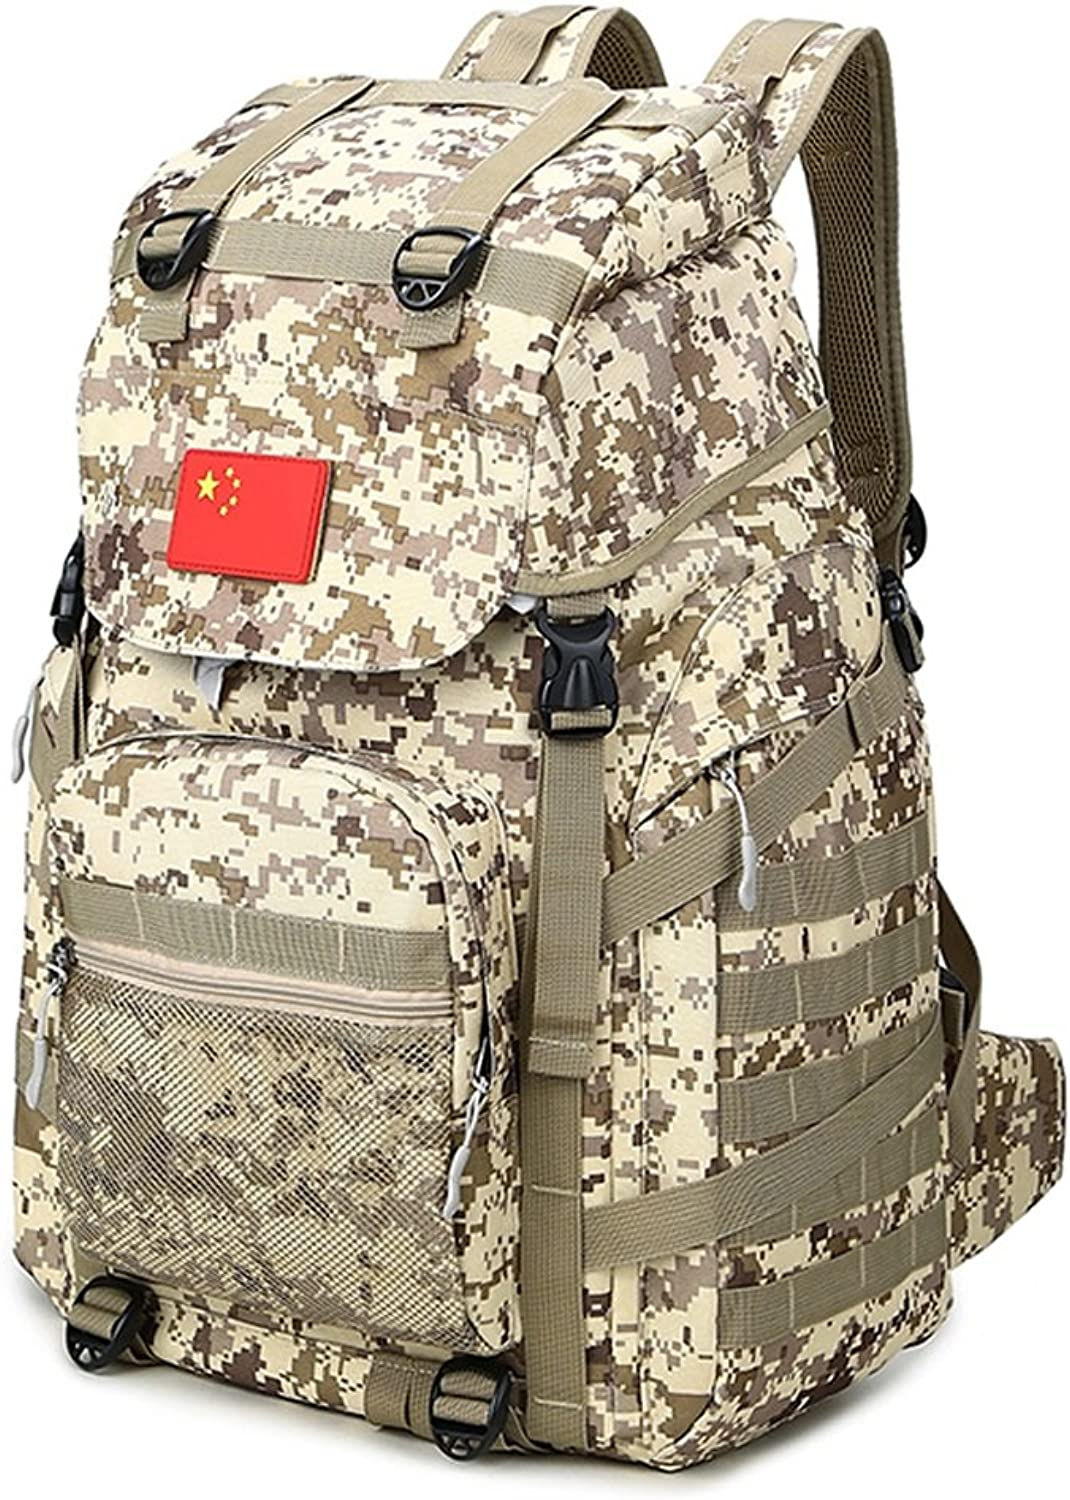 CQ Outdoor Large Capacity Mountaineering Bag Camouflage Backpack Shoulder Bag Men and Women Camouflage Leisure Sports Travel Backpack (color   Desert Camouflage, Size   43  25  63cm)